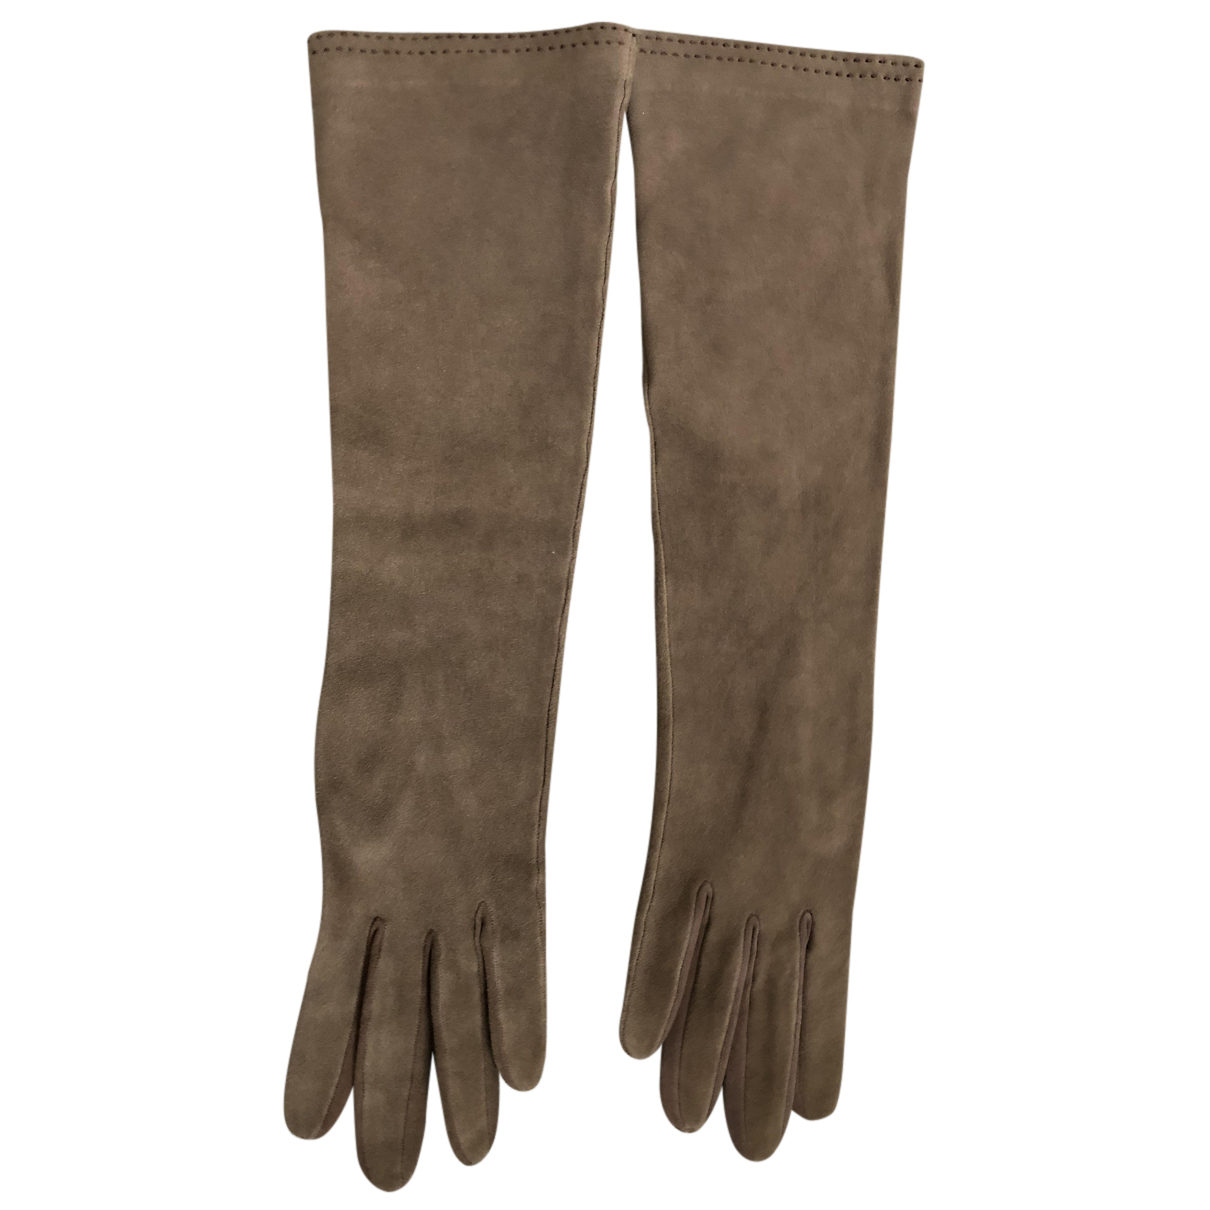 Hermès N Brown Leather Gloves for Women 6.5 Inches